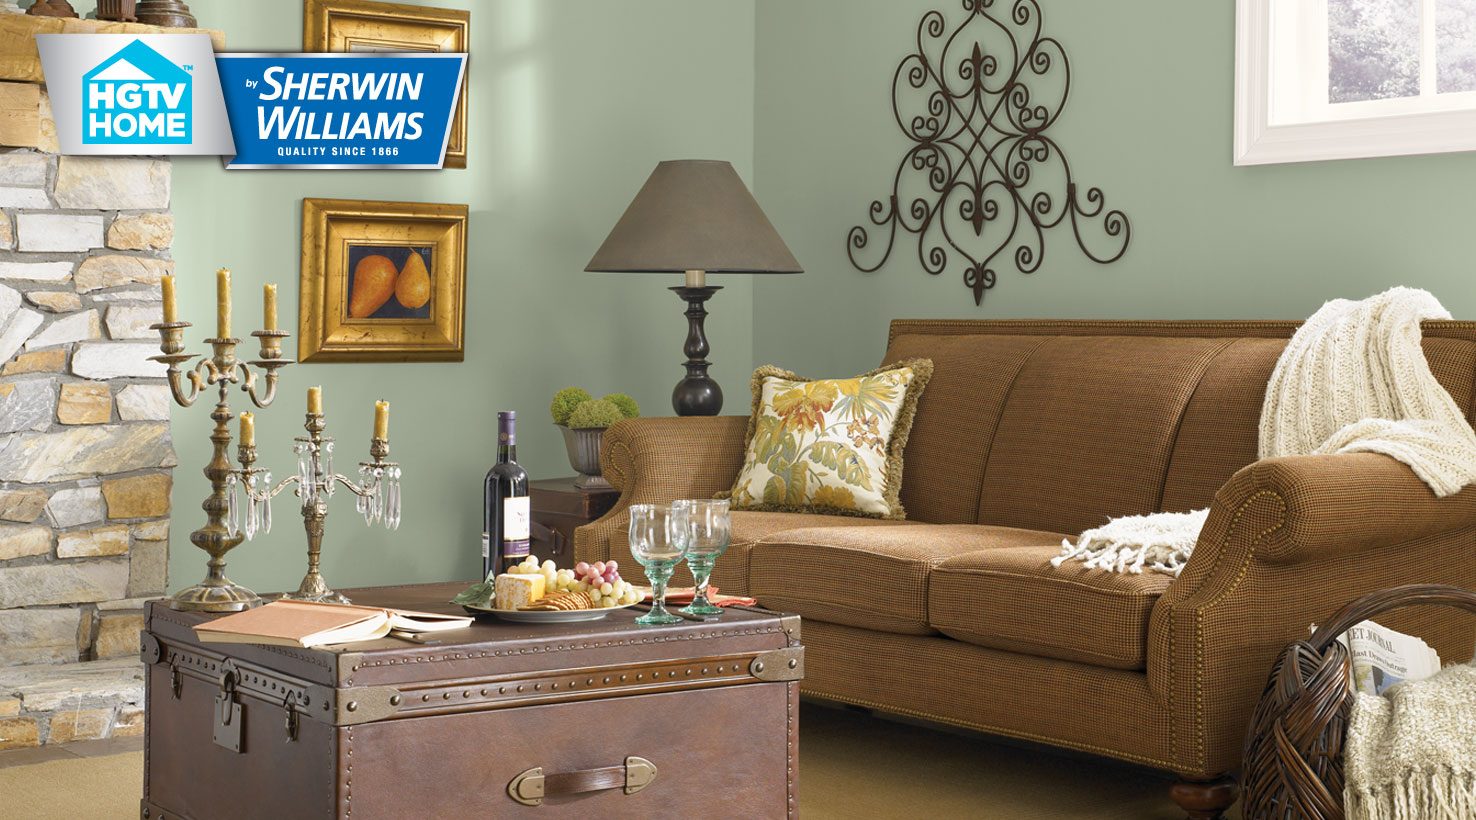 Rustic refined color palette hgtv home by sherwin williams - Rustic home exterior color schemes ...